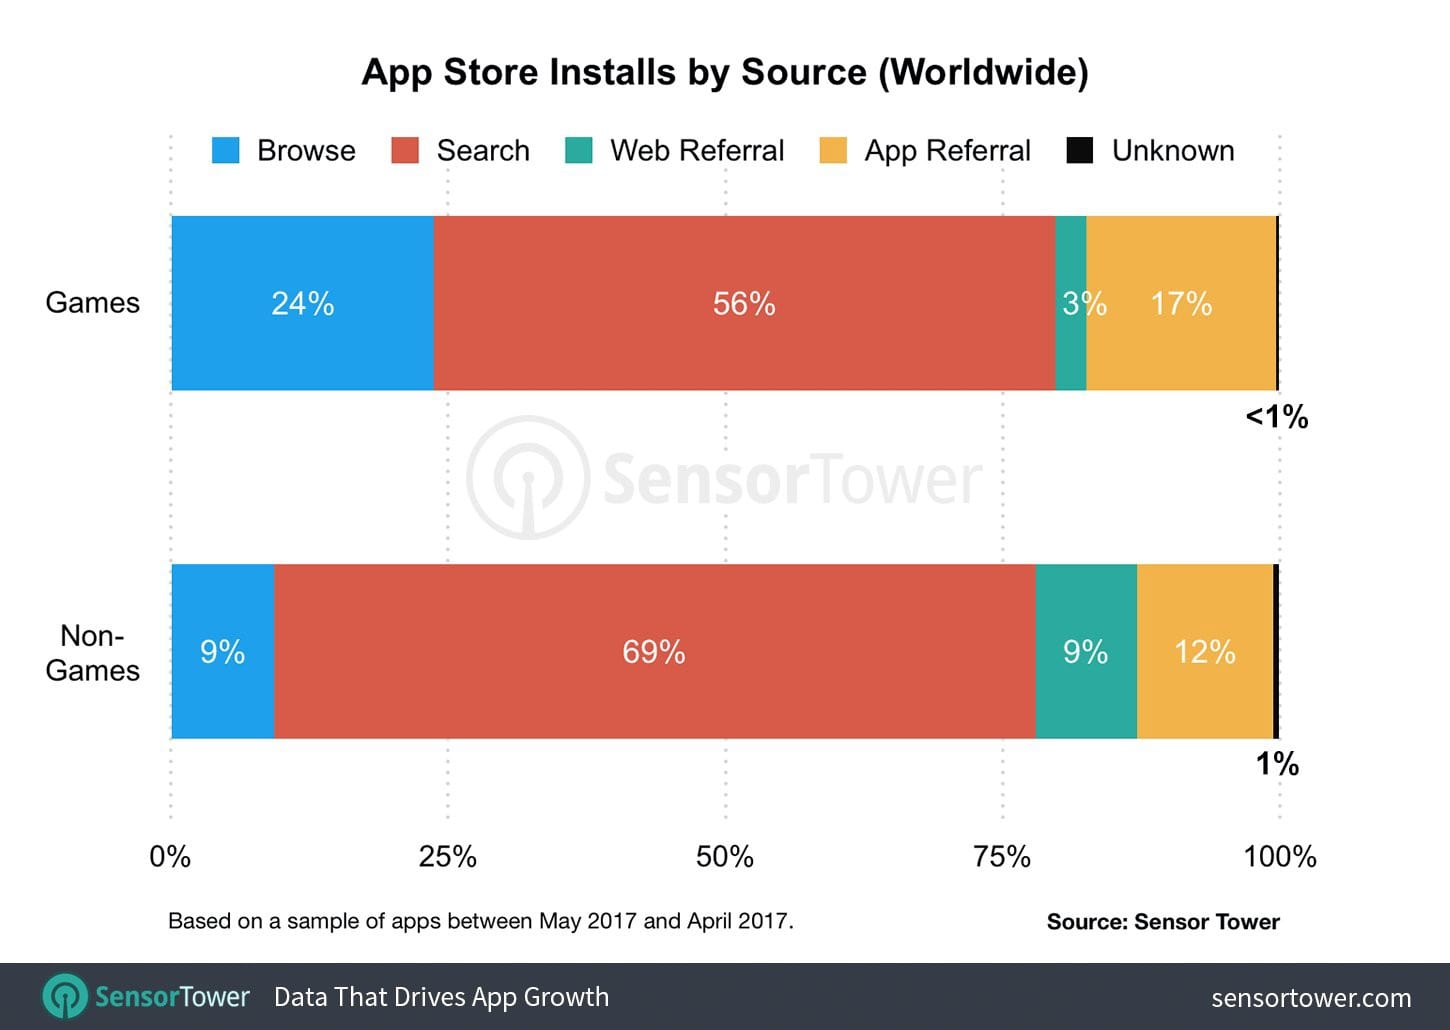 App Store Installs by Source, SensorTower